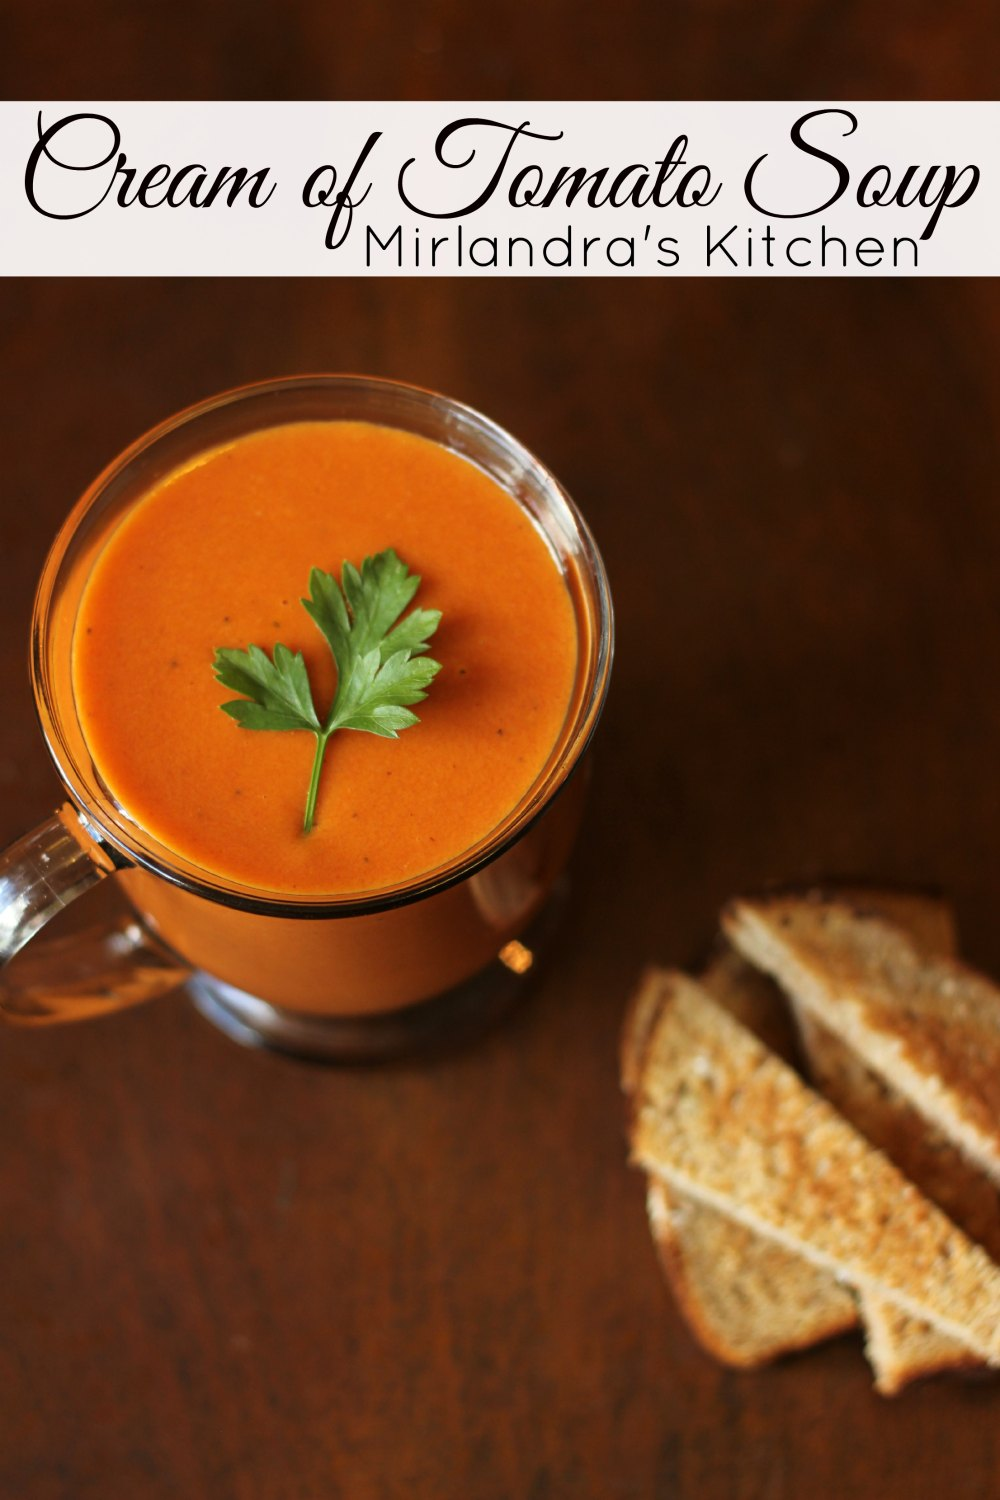 Classic, cream of tomato soup. This simple recipe makes a delicious drinking soup just like mom used to. Gluten free and ready in less than 30 minutes.